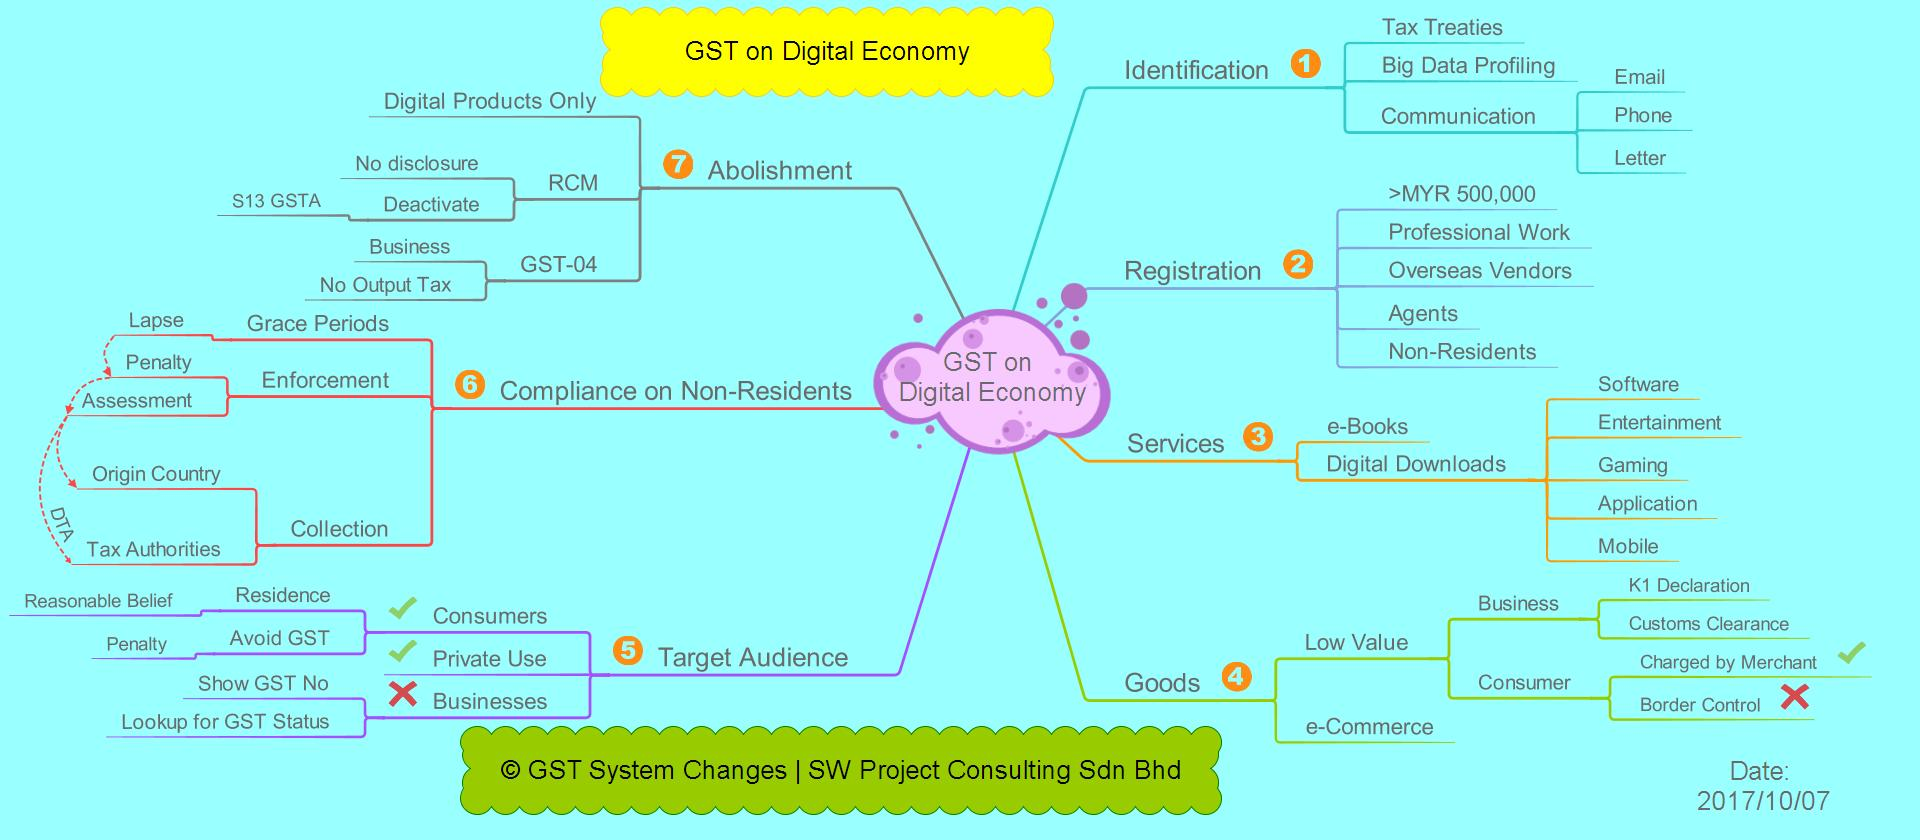 GST on Digital Economy